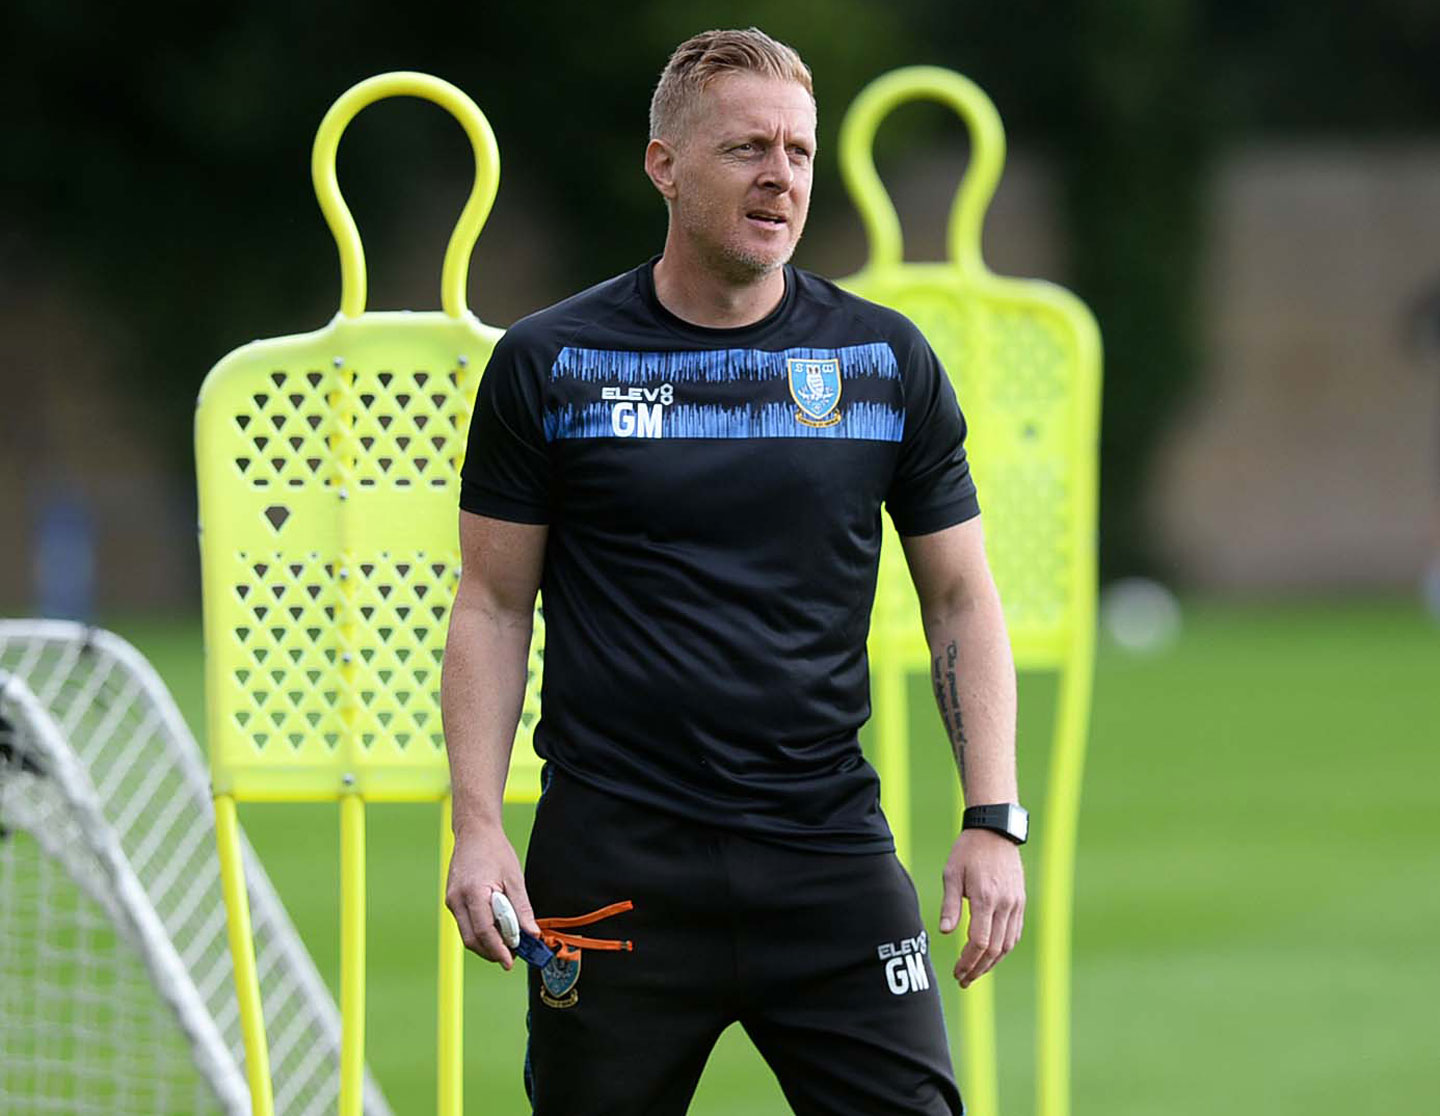 Garry-Monk_Training_4.jpg